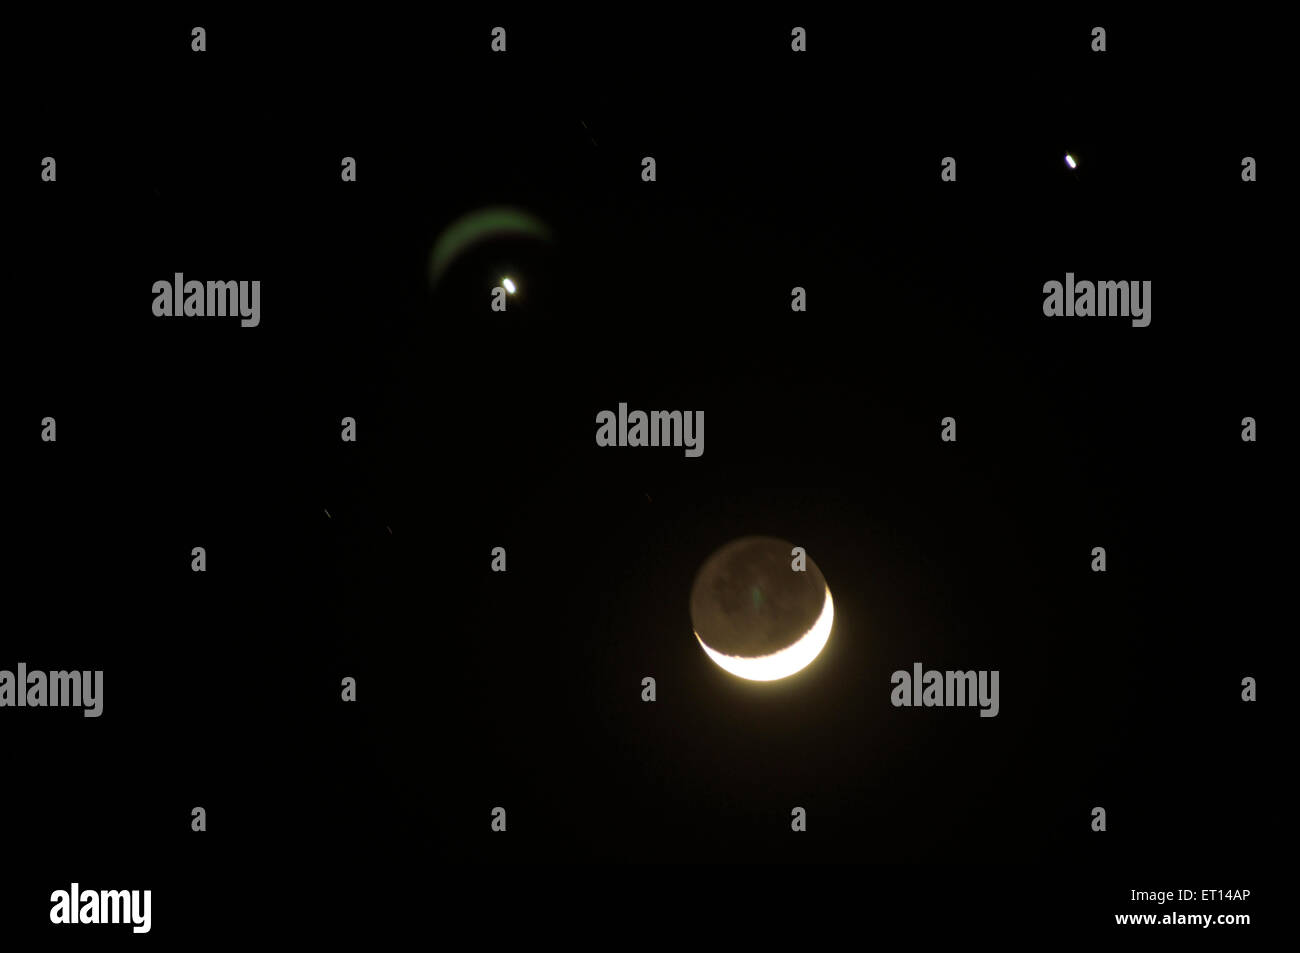 Celestial rarity three brightest objects in sky Jupiter Venus and moon come closest 1 December 08 bright planets - Stock Image